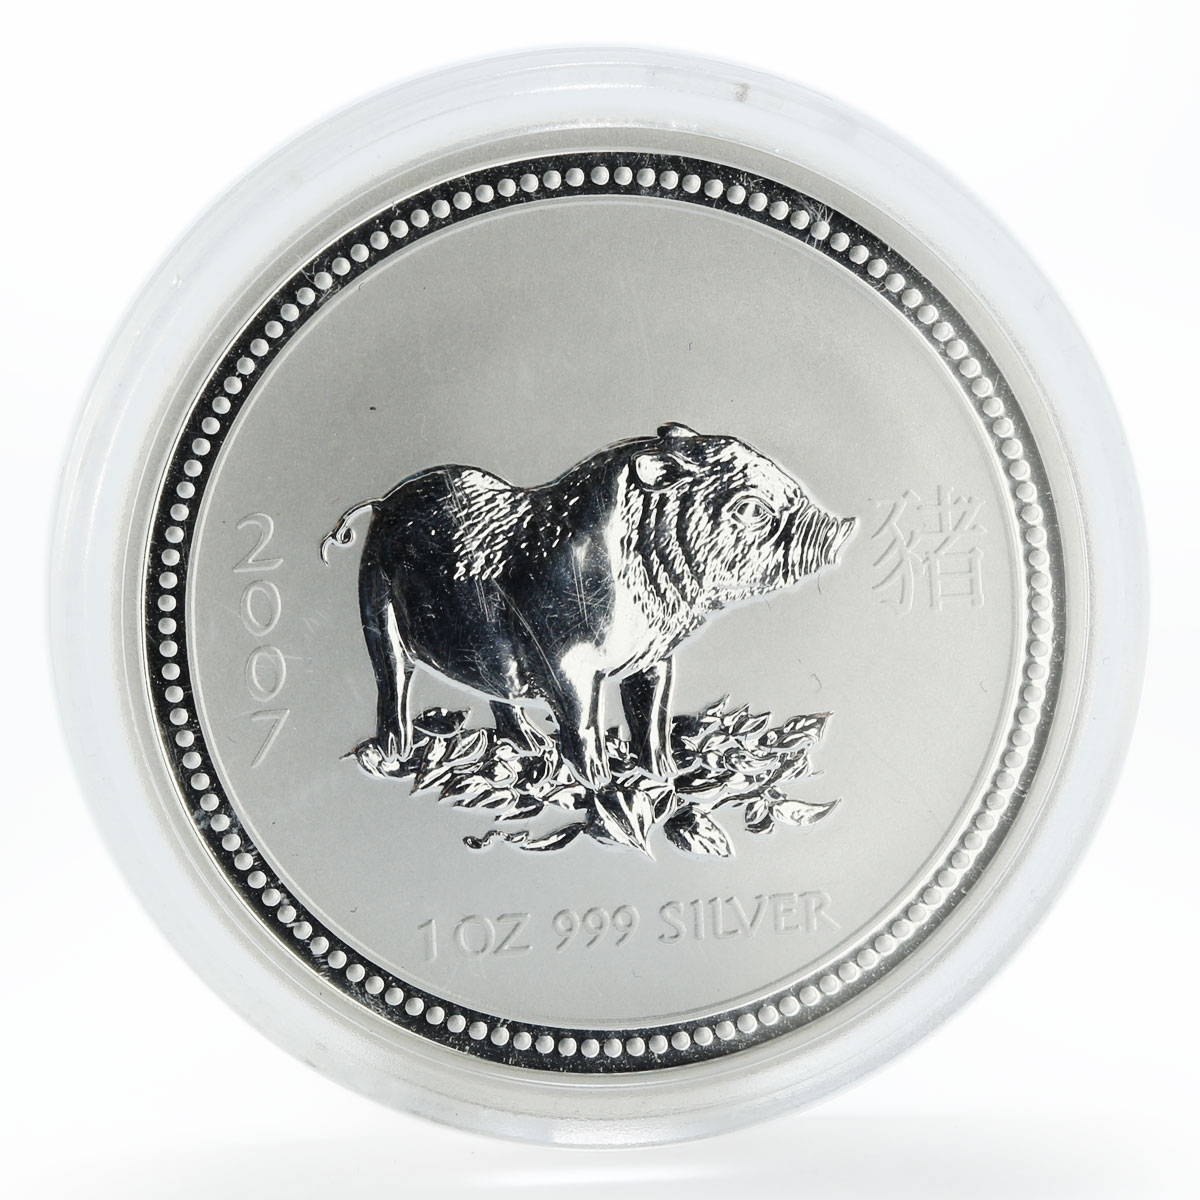 Australia 1 Dollar Year of the Pig Lunar Series I silver coin 2007